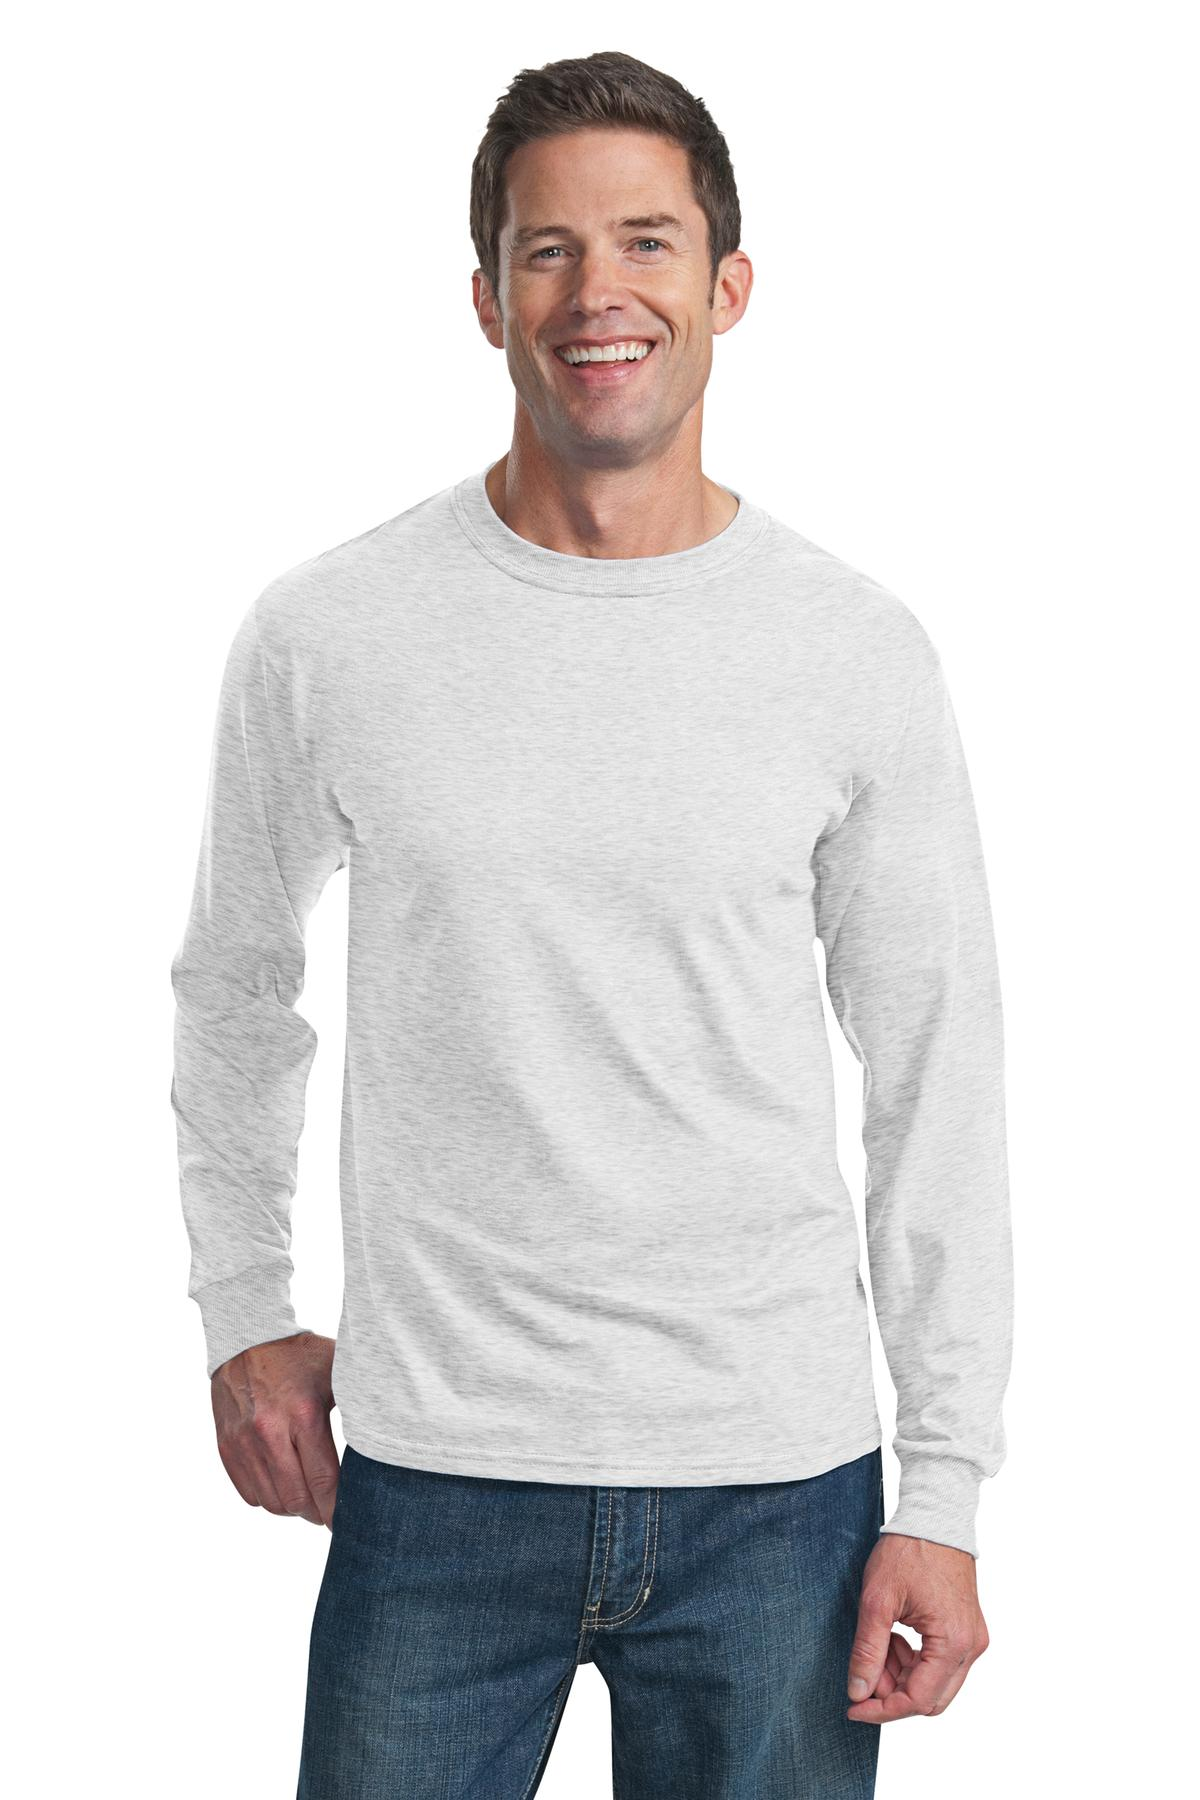 Fruit of the Loom ®  HD Cotton ™  100% Cotton Long Sleeve T-Shirt. 4930 - Ash*